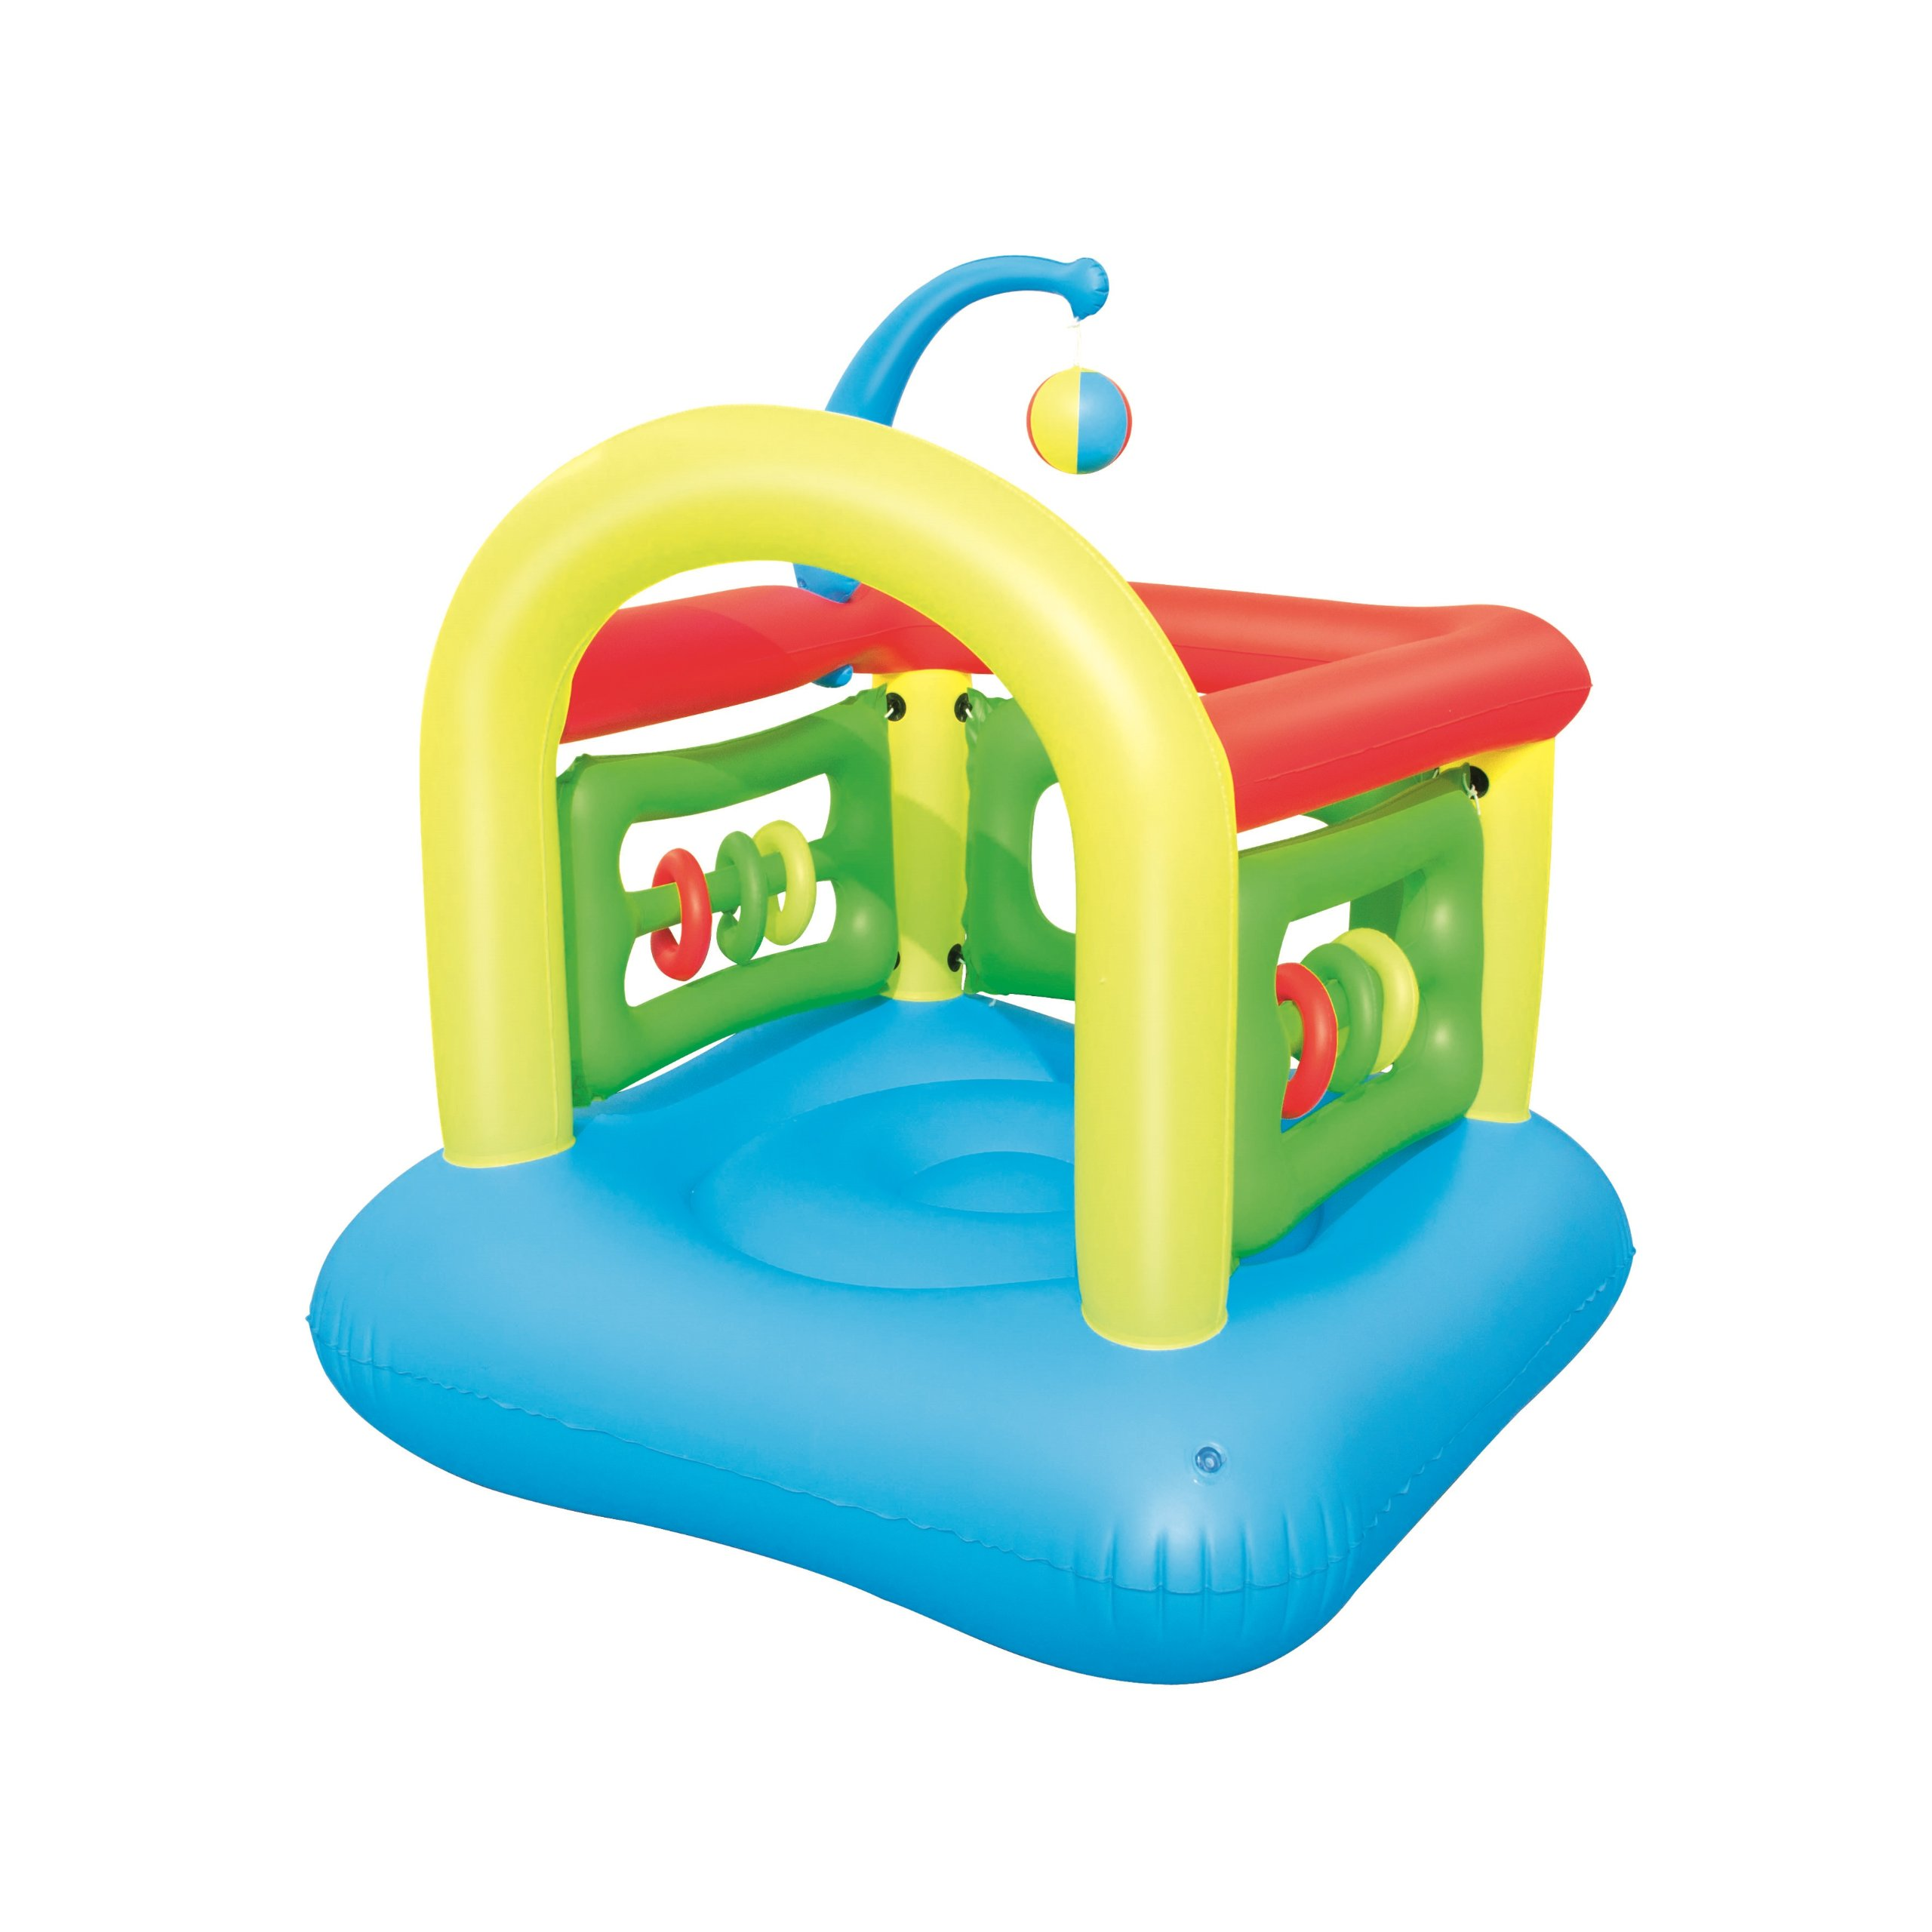 UP IN & OVER Inflatable Kiddie Play Center